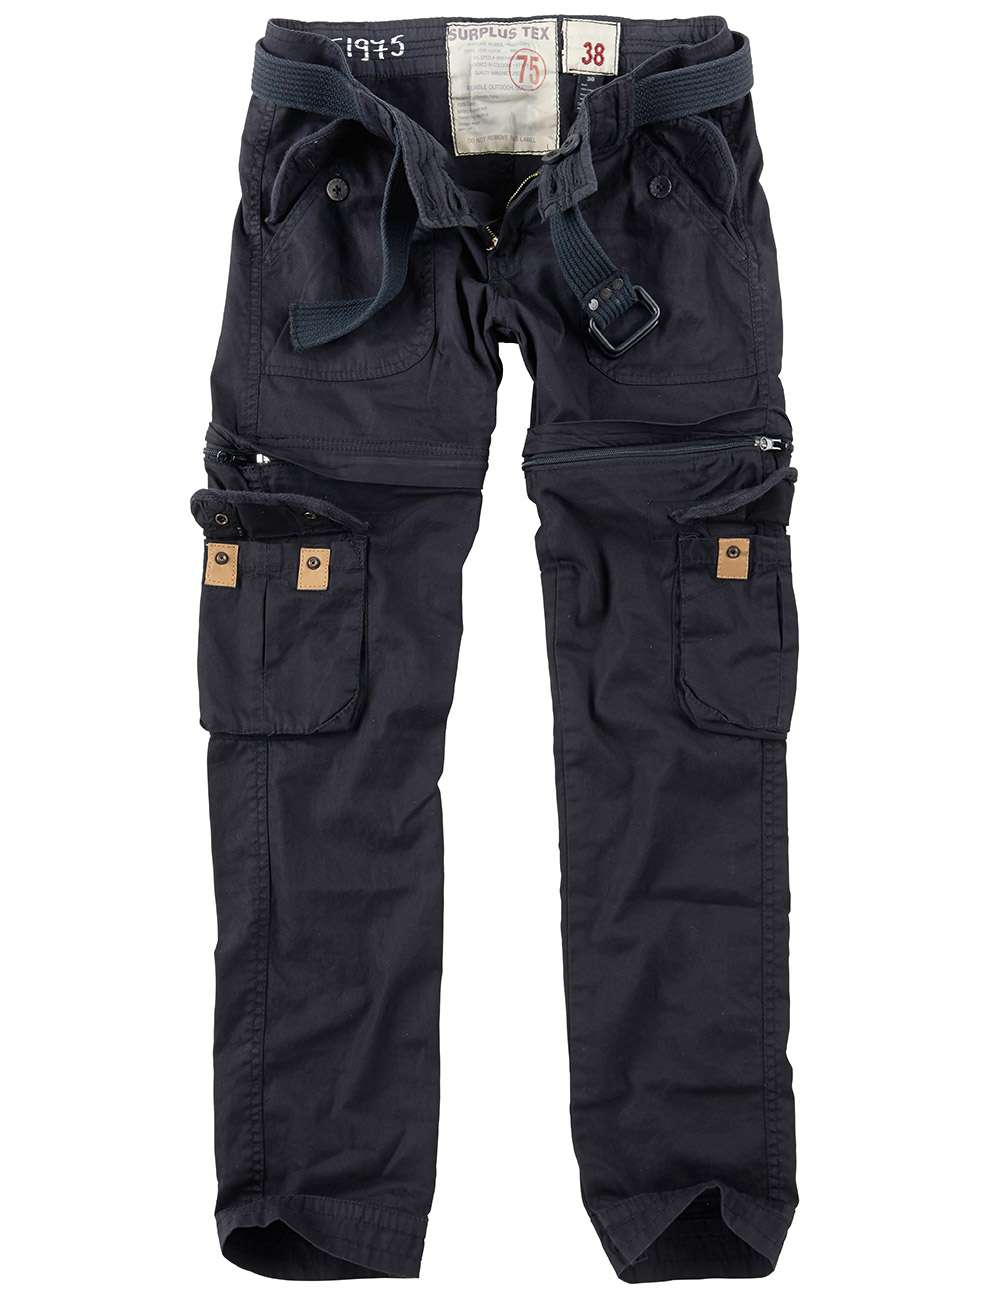 Ladies cargo army pants Trekking Premium - Surplus - Black  4b6c28f899